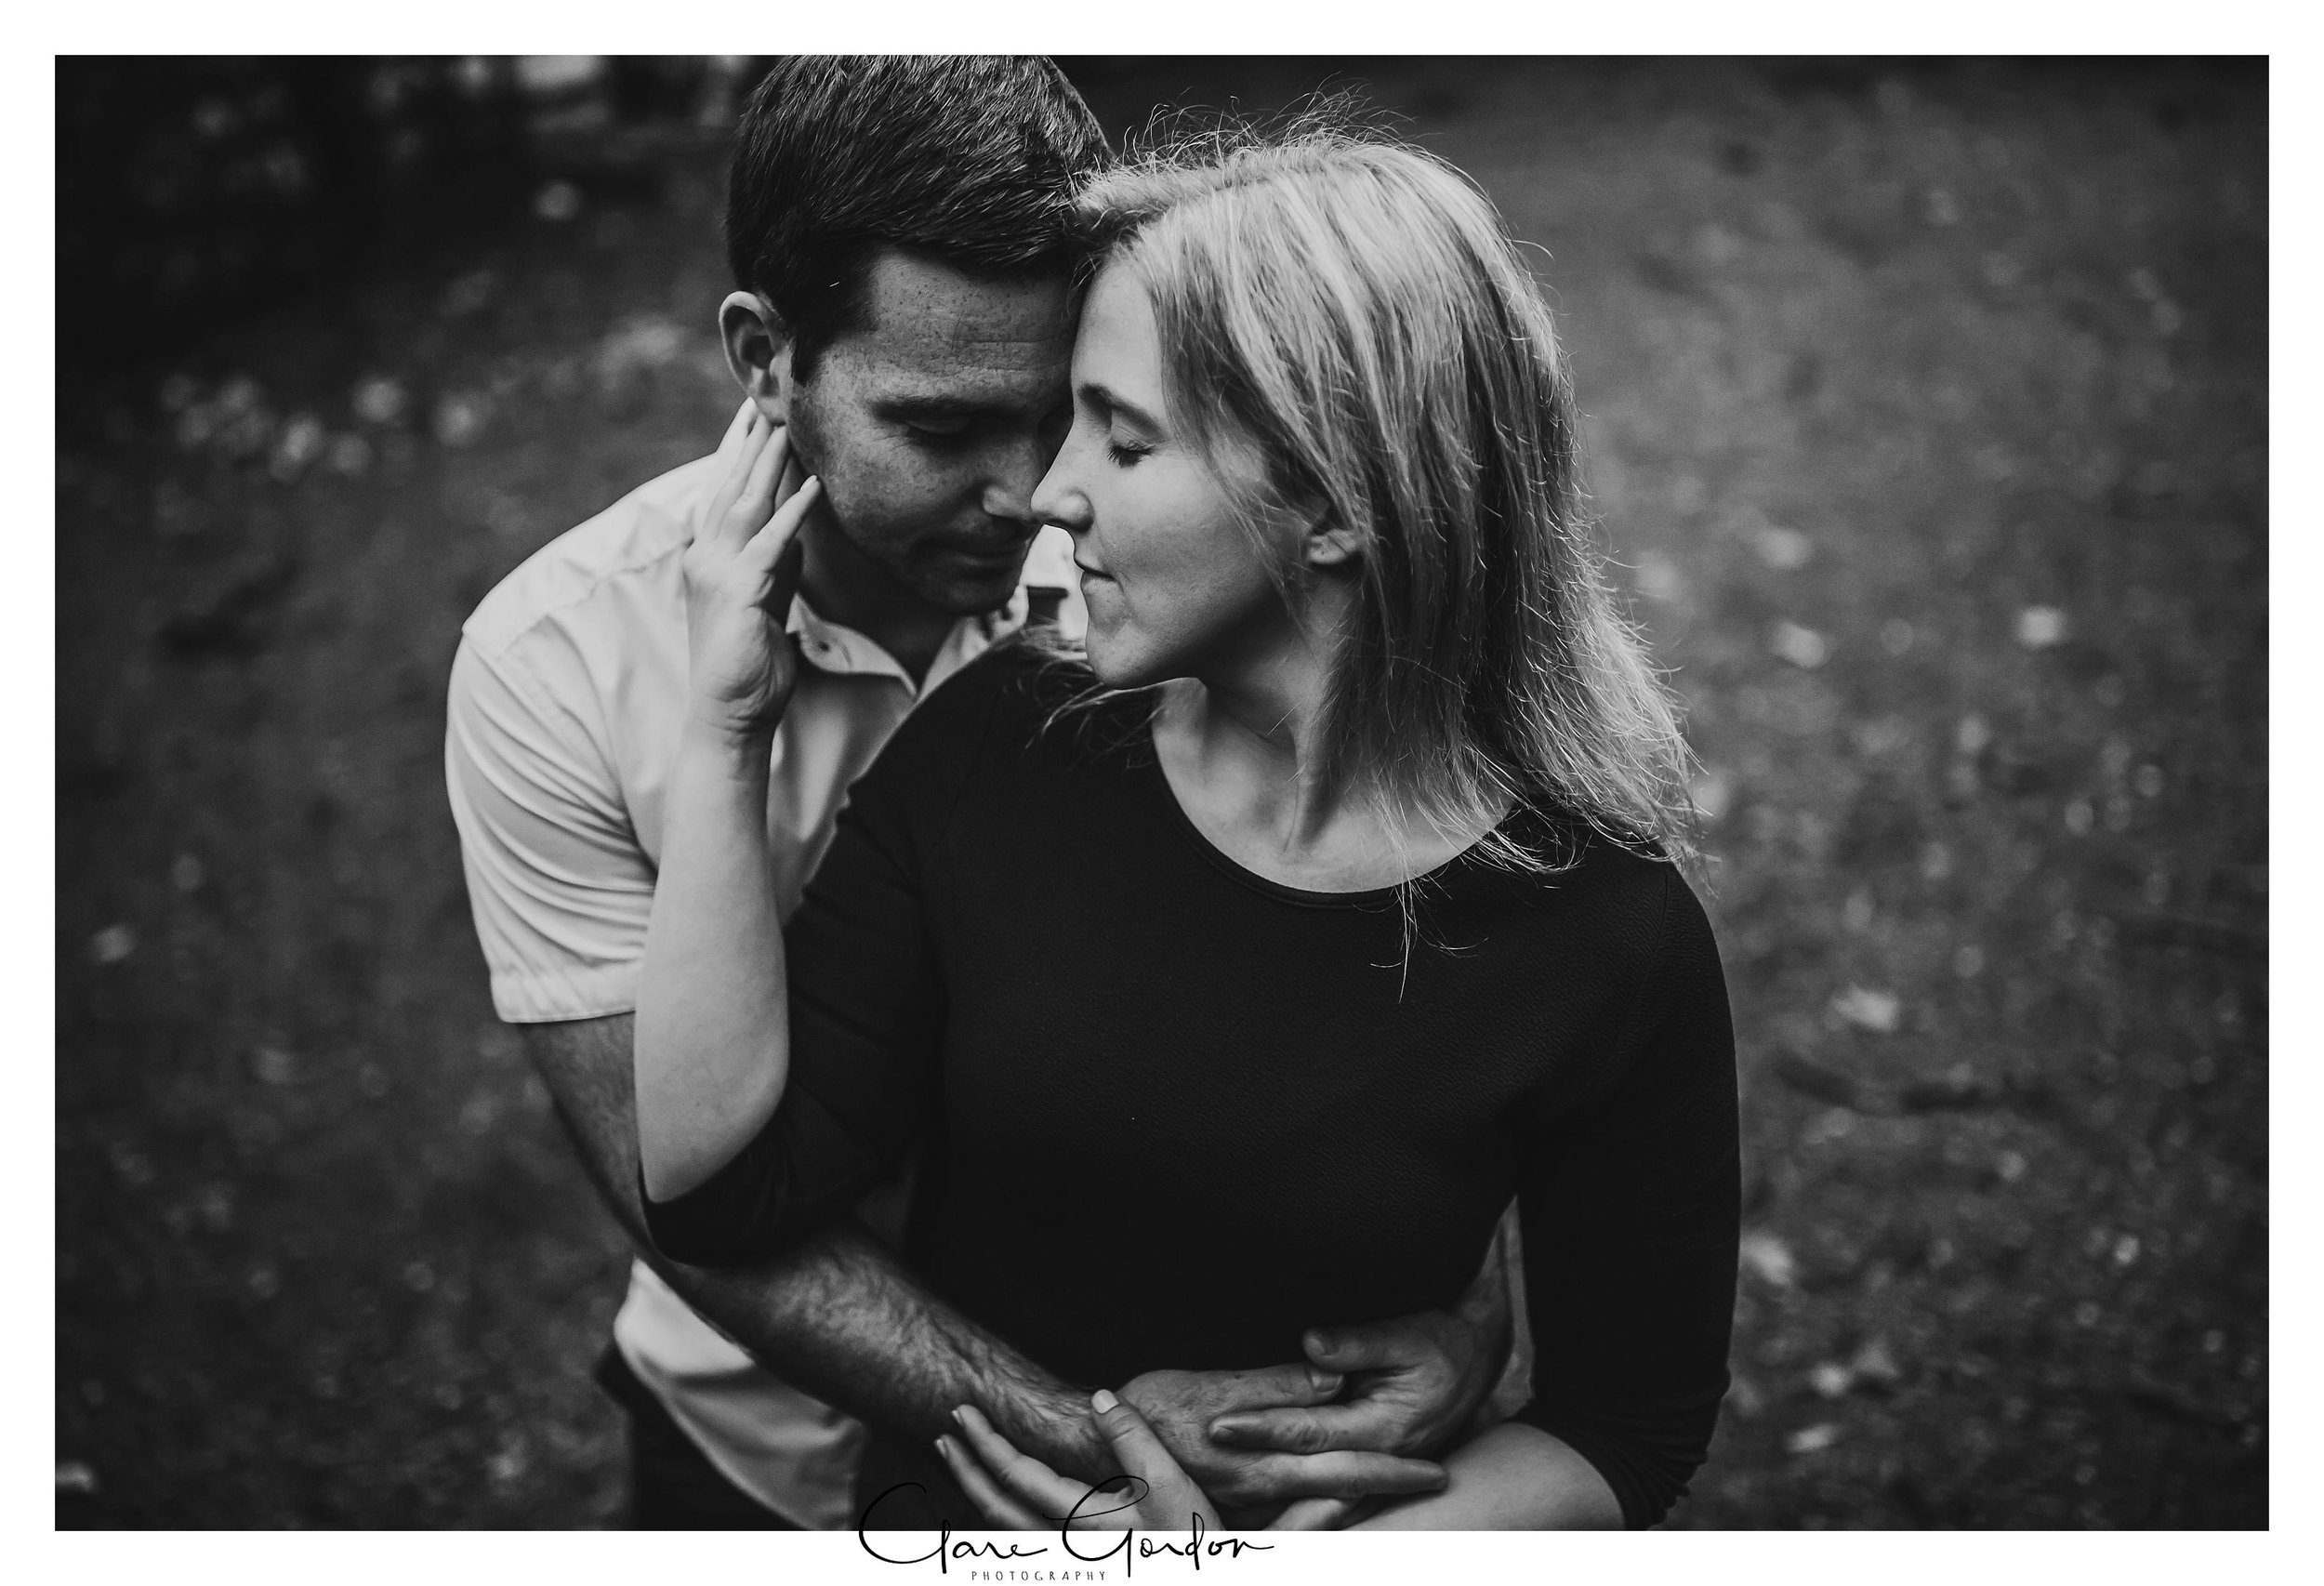 Clare-Gordon-Photography-Engagement-photos-couple-hugging.jpg